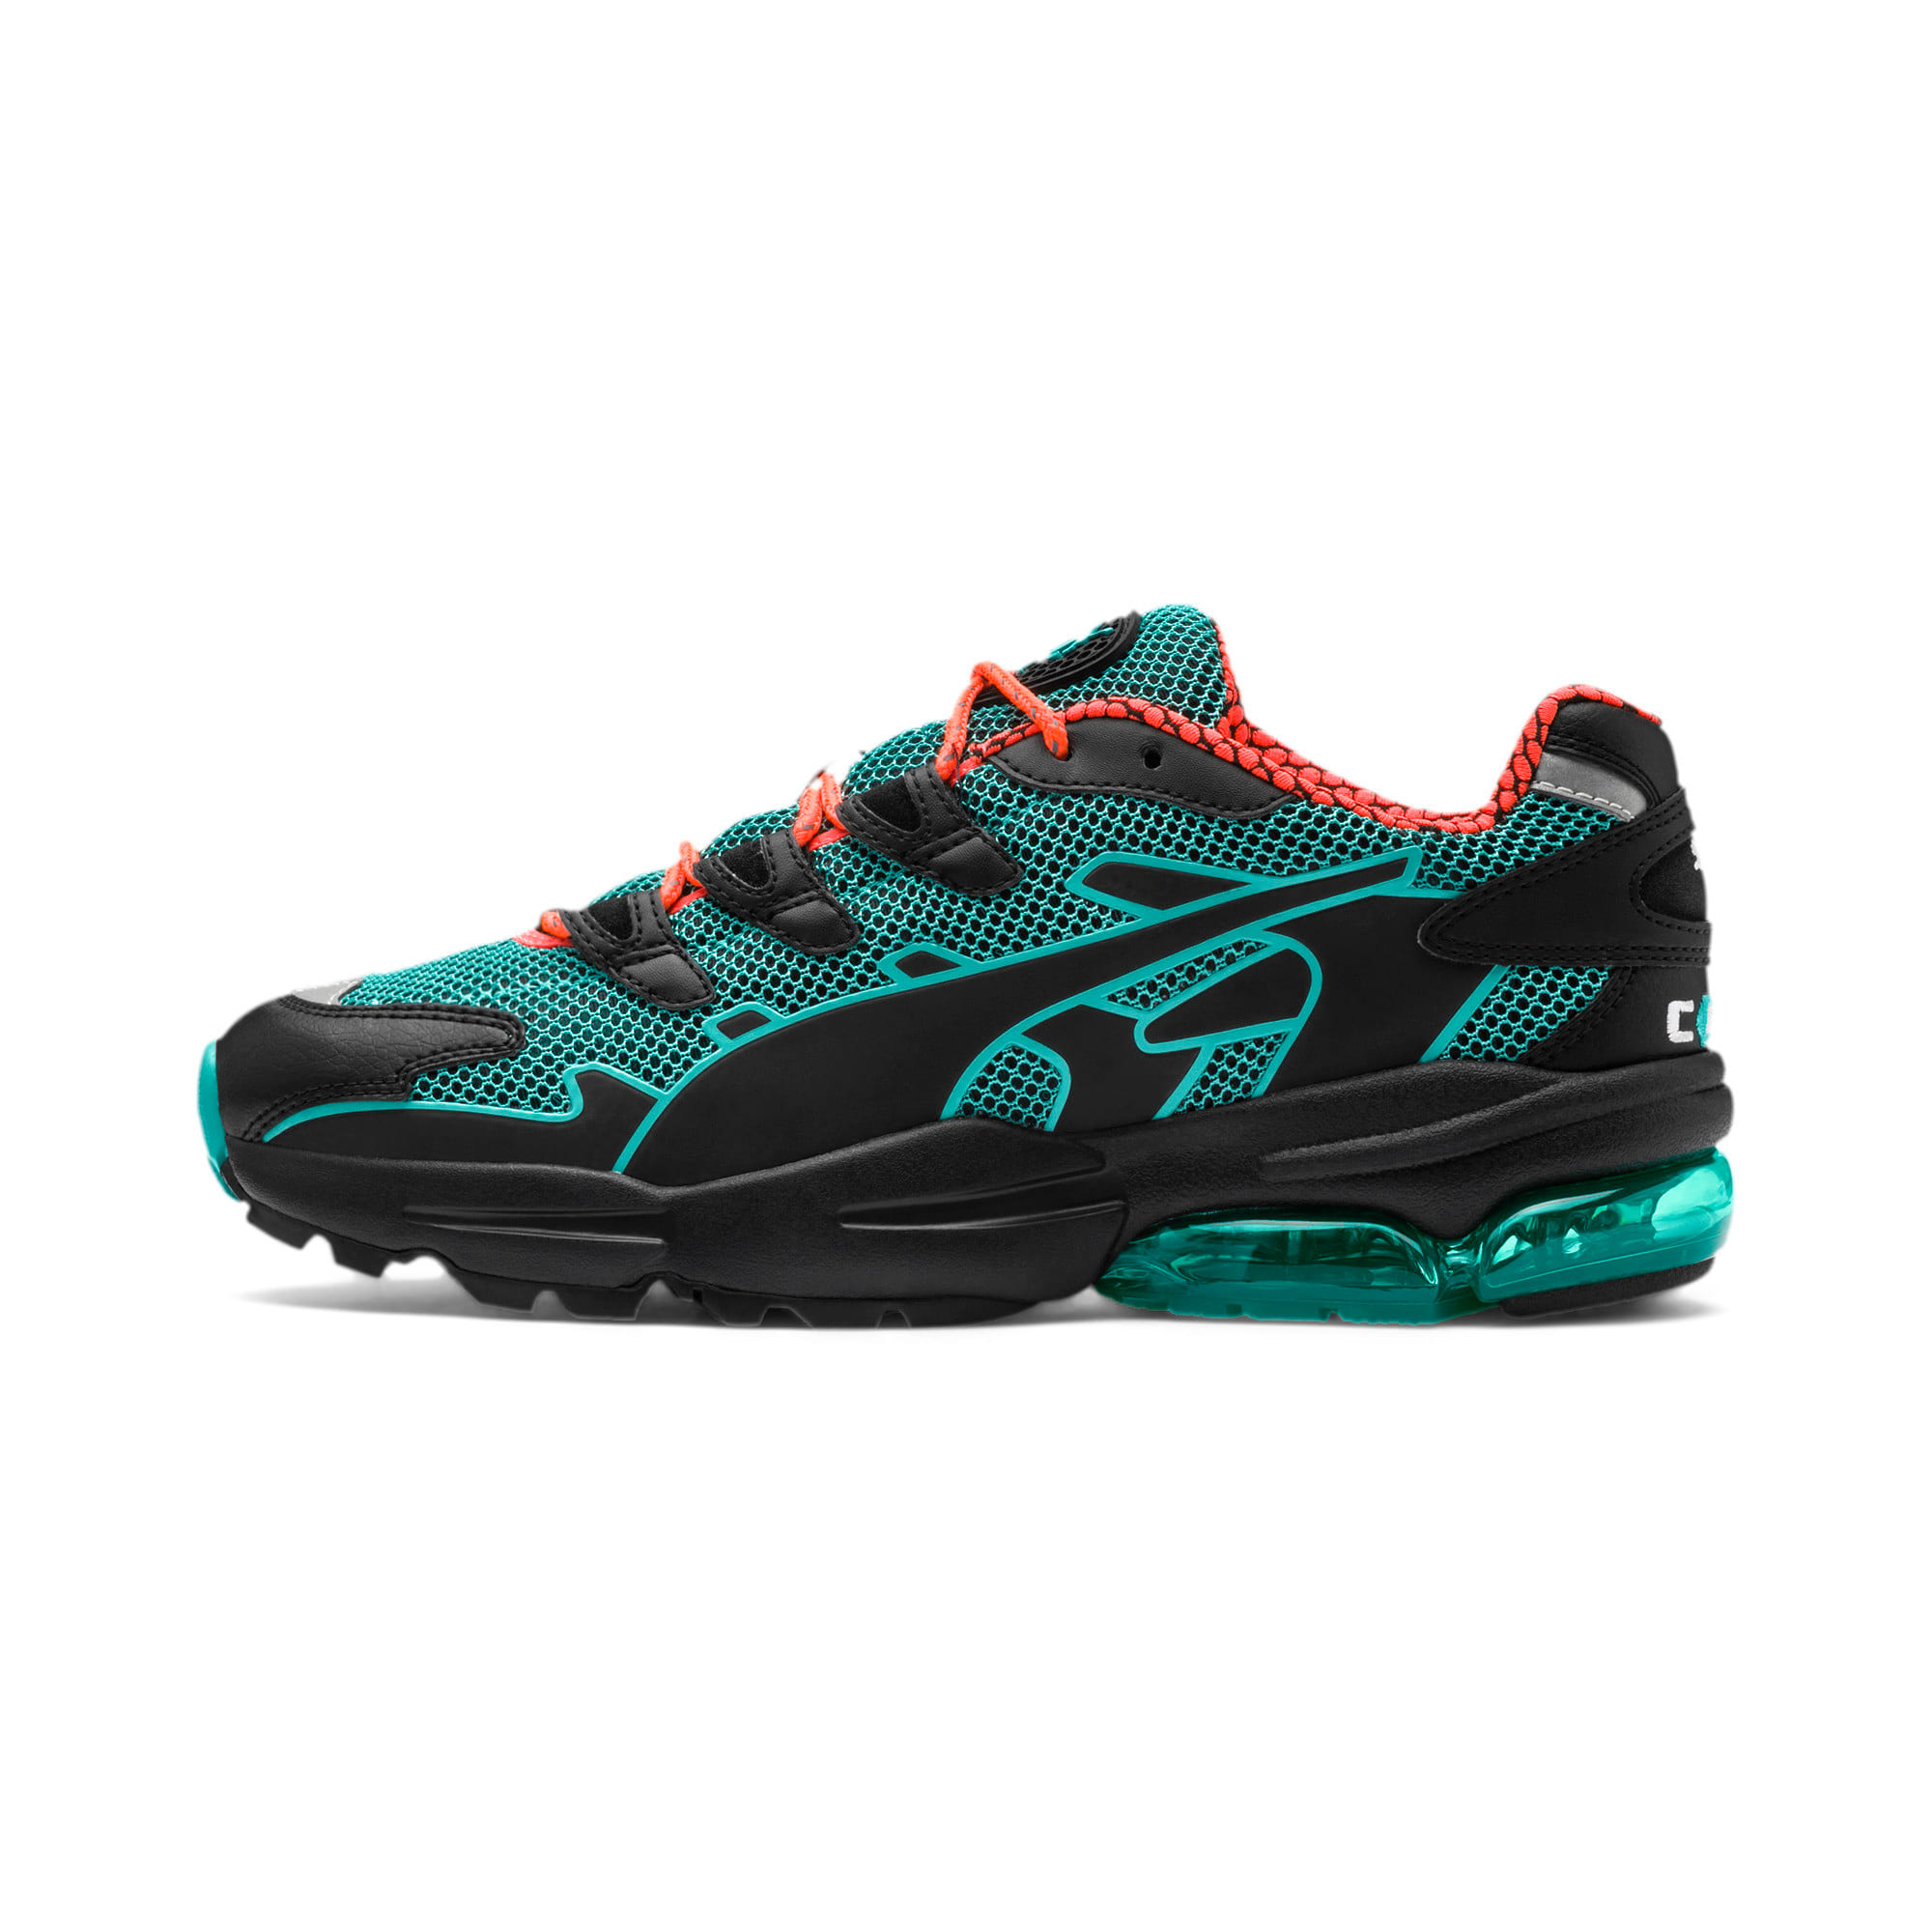 Thumbnail 1 of CELL Alien Kotto Trainers, Puma Black-Blue Turquoise, medium